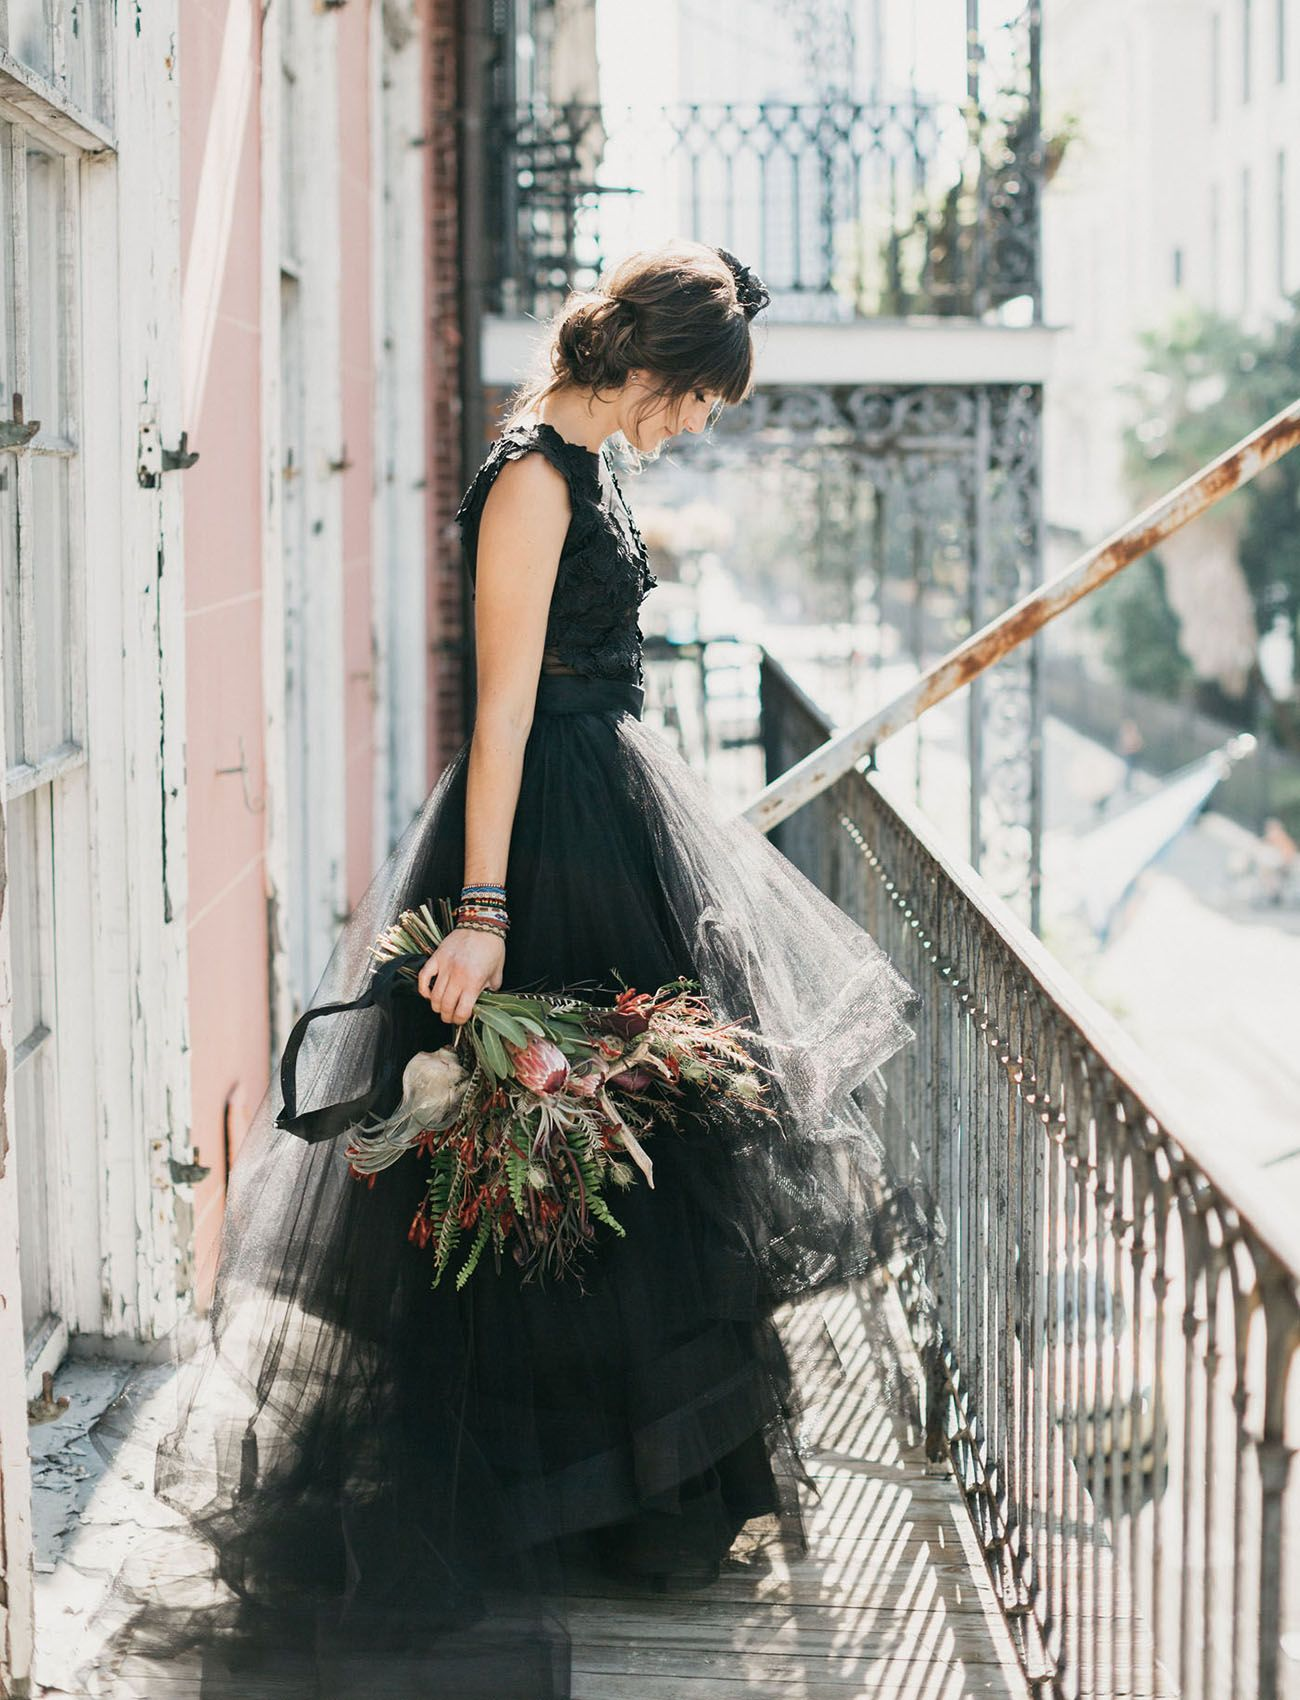 Moody Victorian Inspired Elopement At The Pharmacy Museum In New Orleans Green Wedding Shoes Black Wedding Dress Gothic Funky Wedding Dresses Gothic Wedding Dress [ 1700 x 1300 Pixel ]